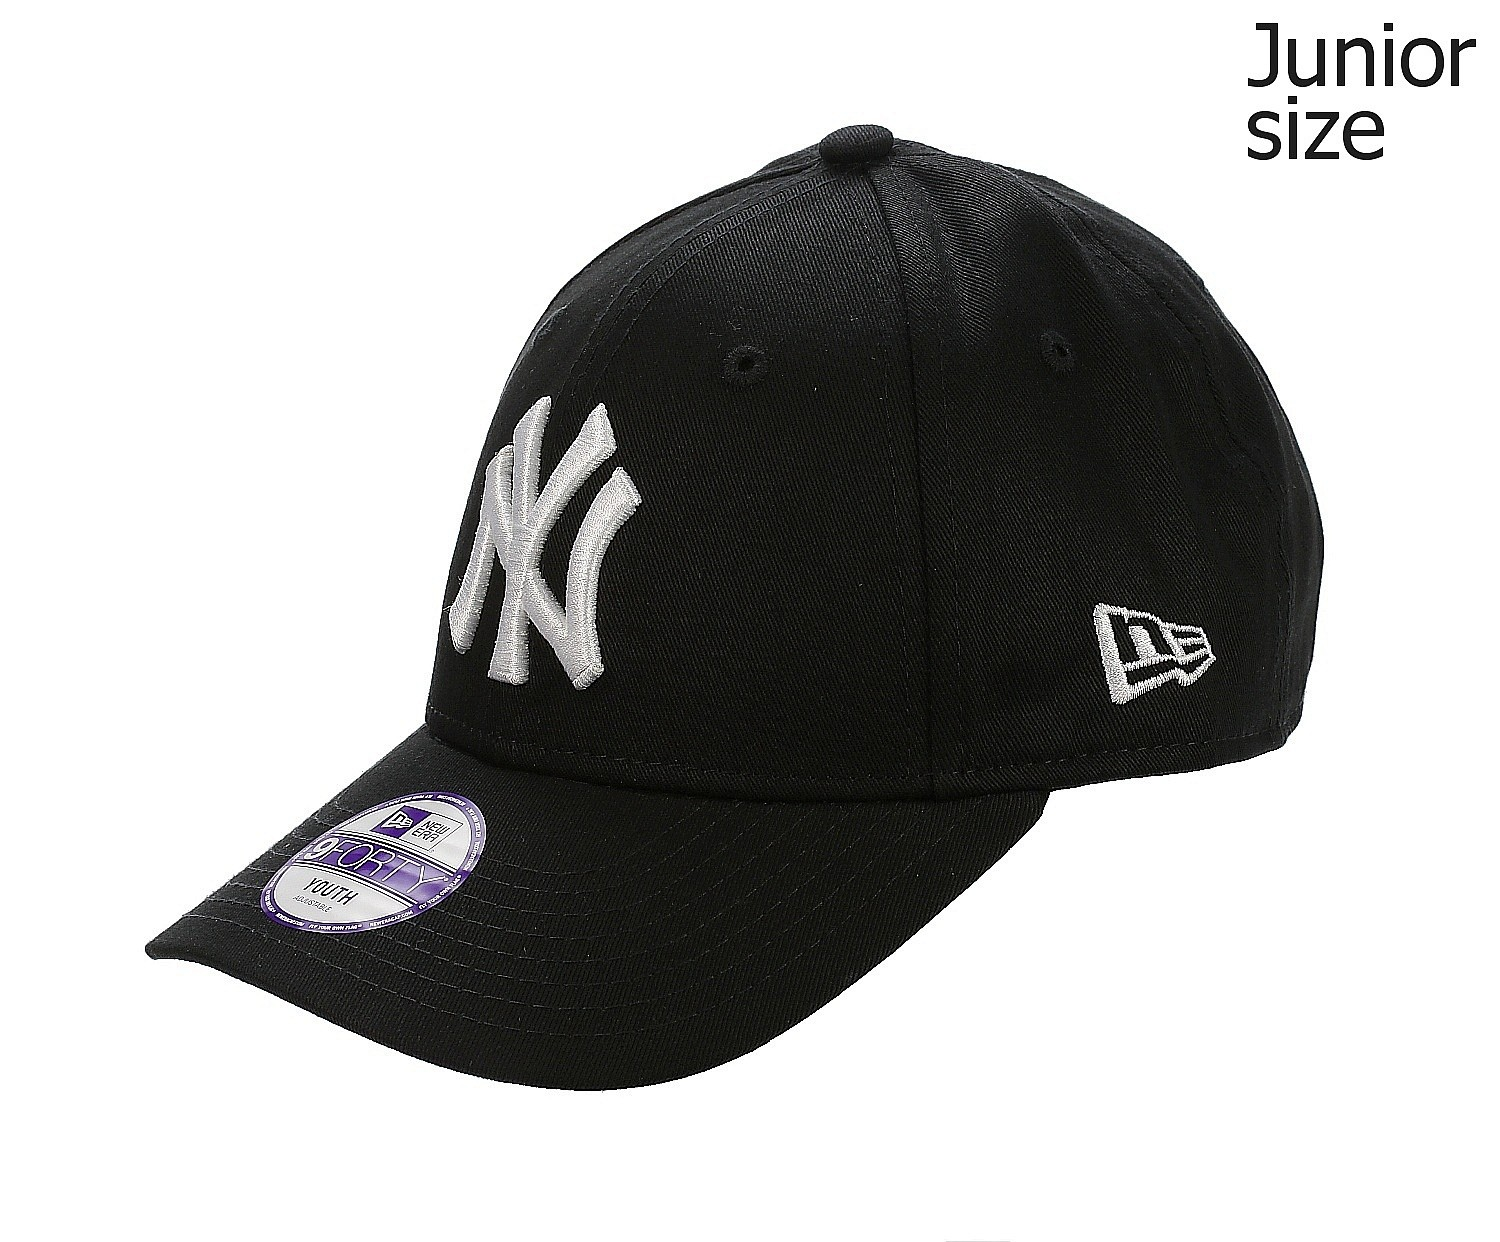 d4dd99c54be ... adjustable hat navy blue white e57c2 893e5  where can i buy cap new era  9fo league basic mlb new york yankees youth black